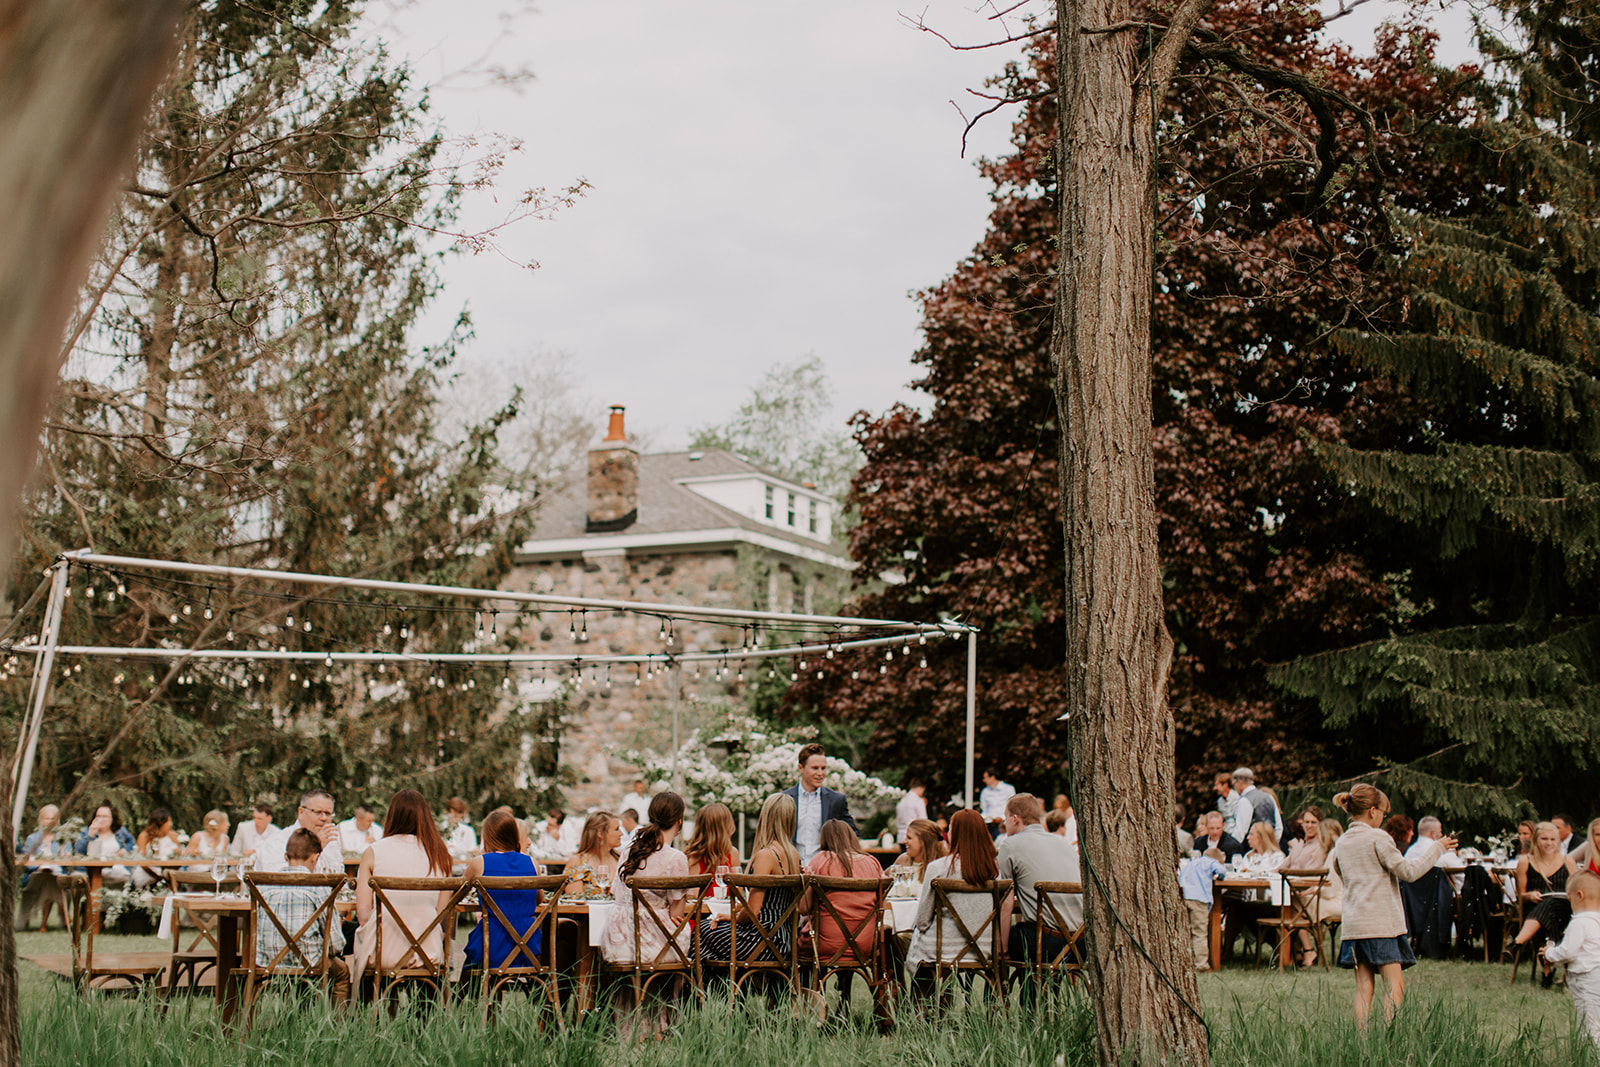 June in Bloom   Laura & Griffin of Indiana said I-Do on June 1, 2019 with 200 of their dear friends and family under twinkle lights and a gorgeous tangerine sunset. Our first and only tent-free wedding to date was a success as the rain held off other than a few sprinkles during the ceremony. This extremely stylish wedding is a treat to relive. Enjoy!